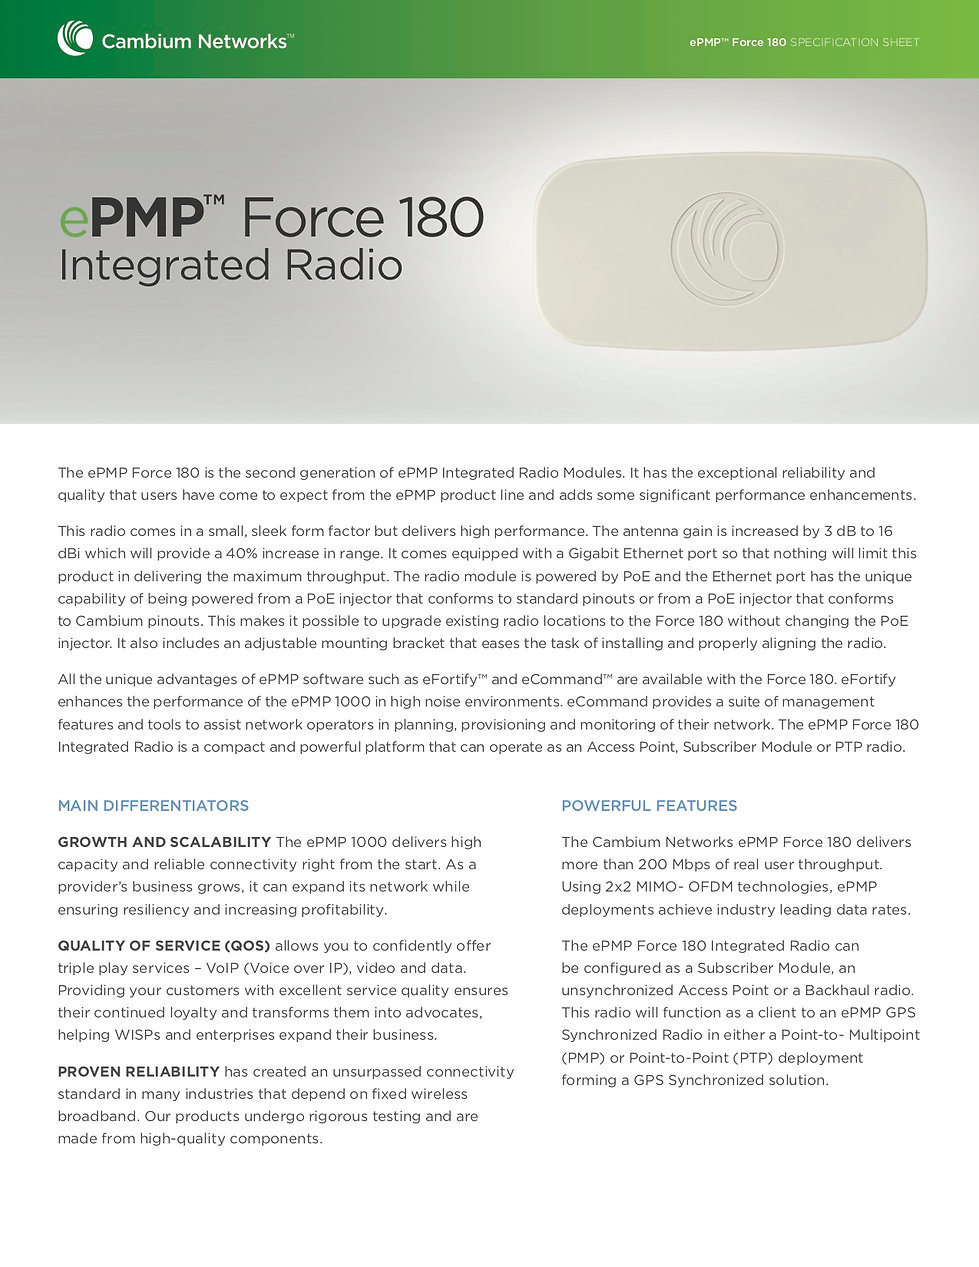 CambiumePMP Force 180 Specification